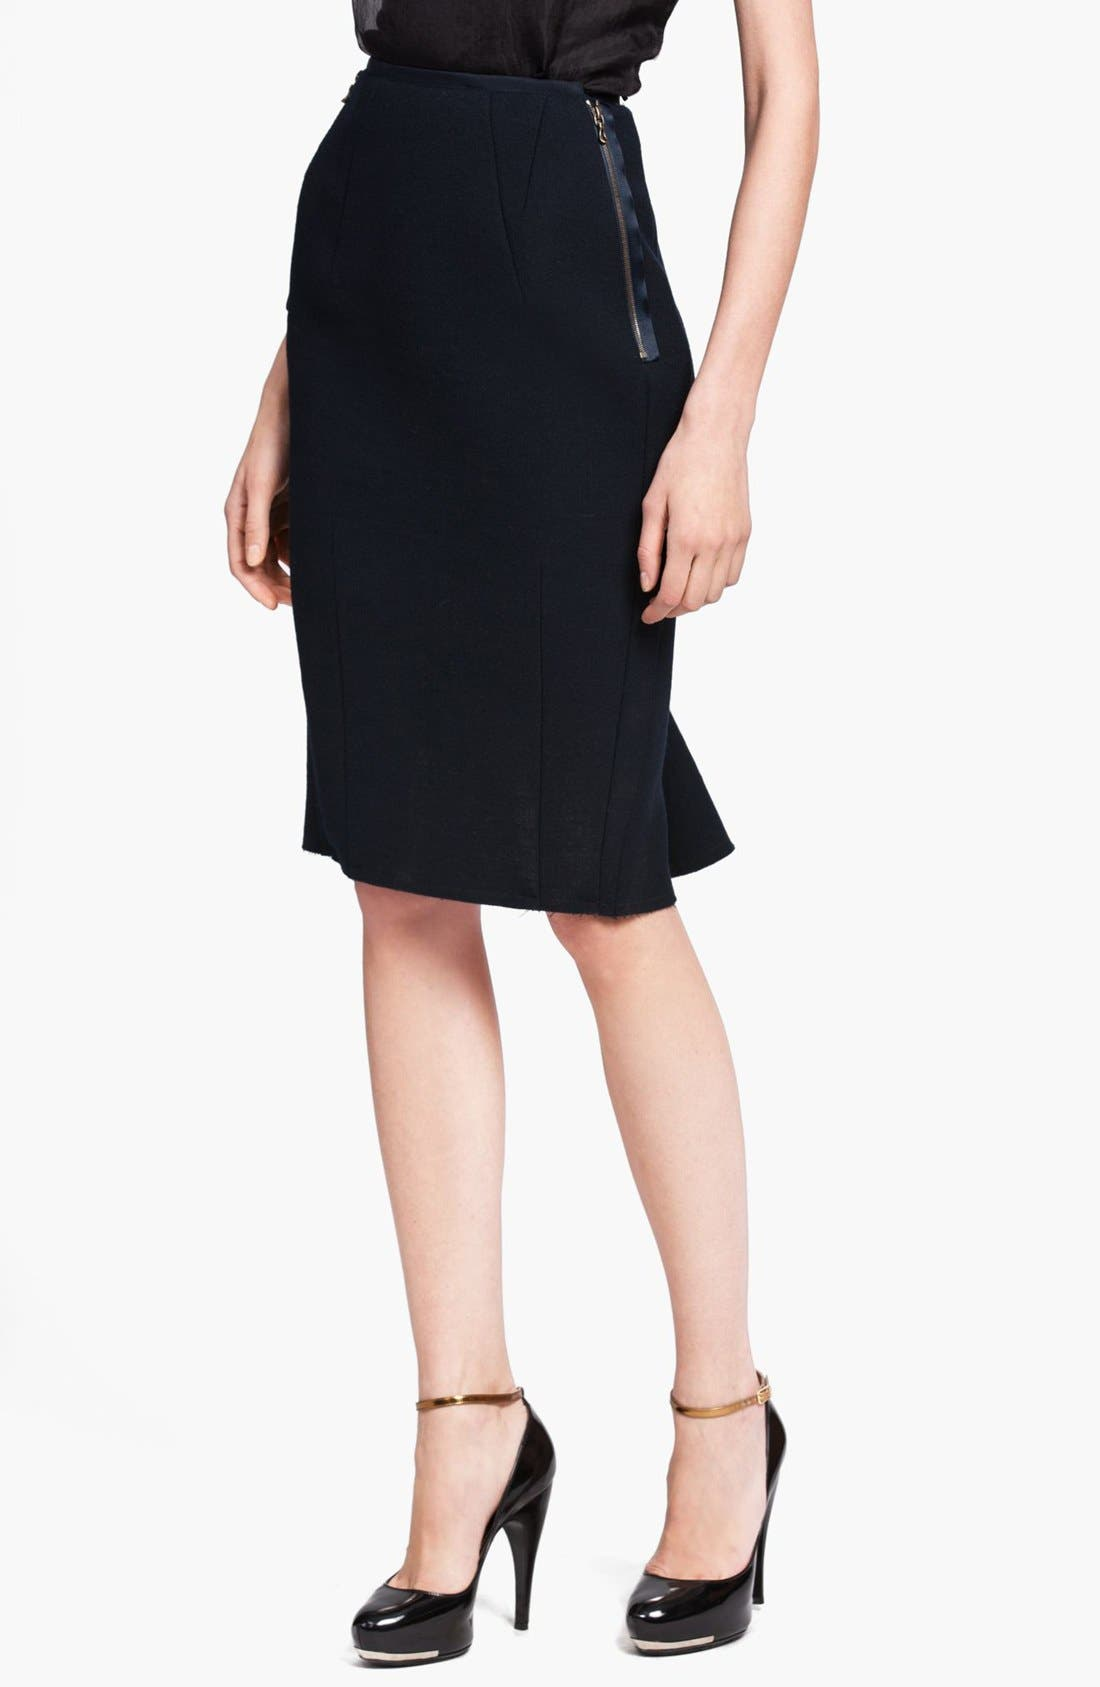 Alternate Image 1 Selected - Lanvin Bias Cut Wool Fishtail Skirt